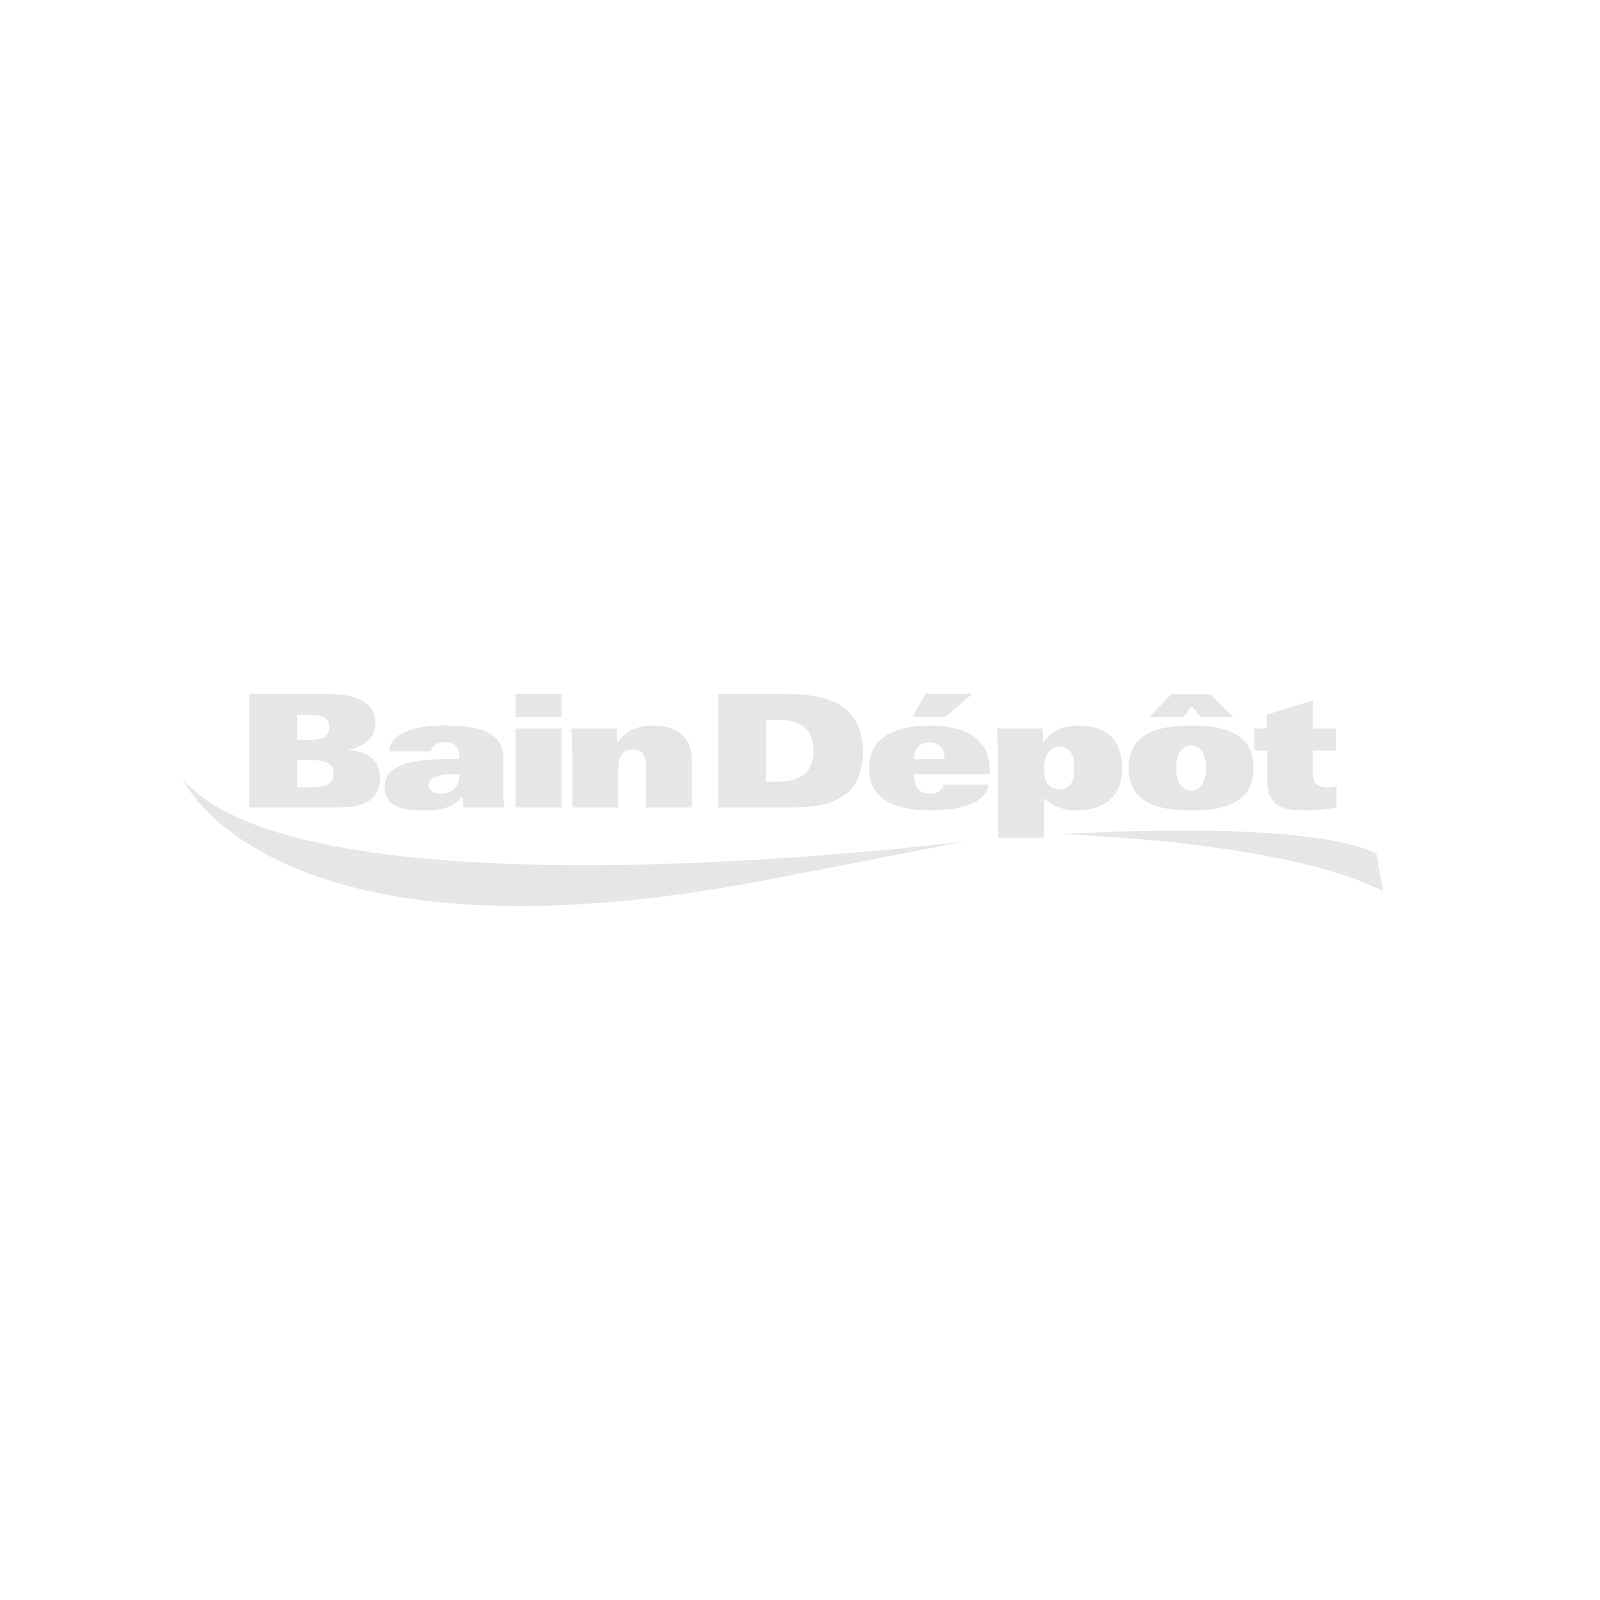 "Double undermount or topmount kitchen sink 29"" x 19"""